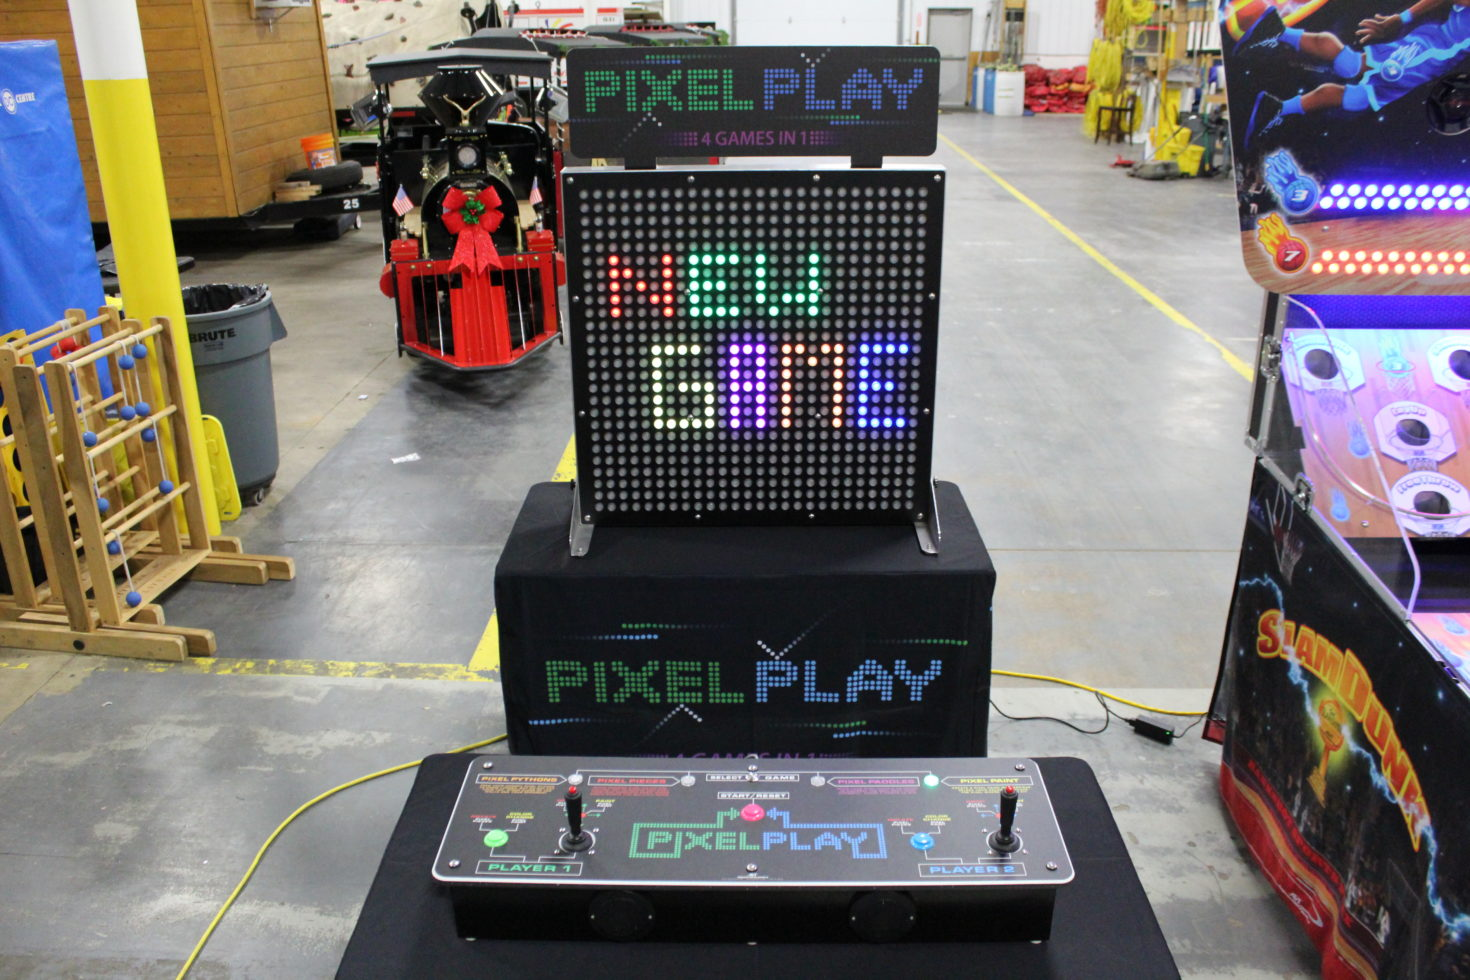 Wide shot of pixel play and control console